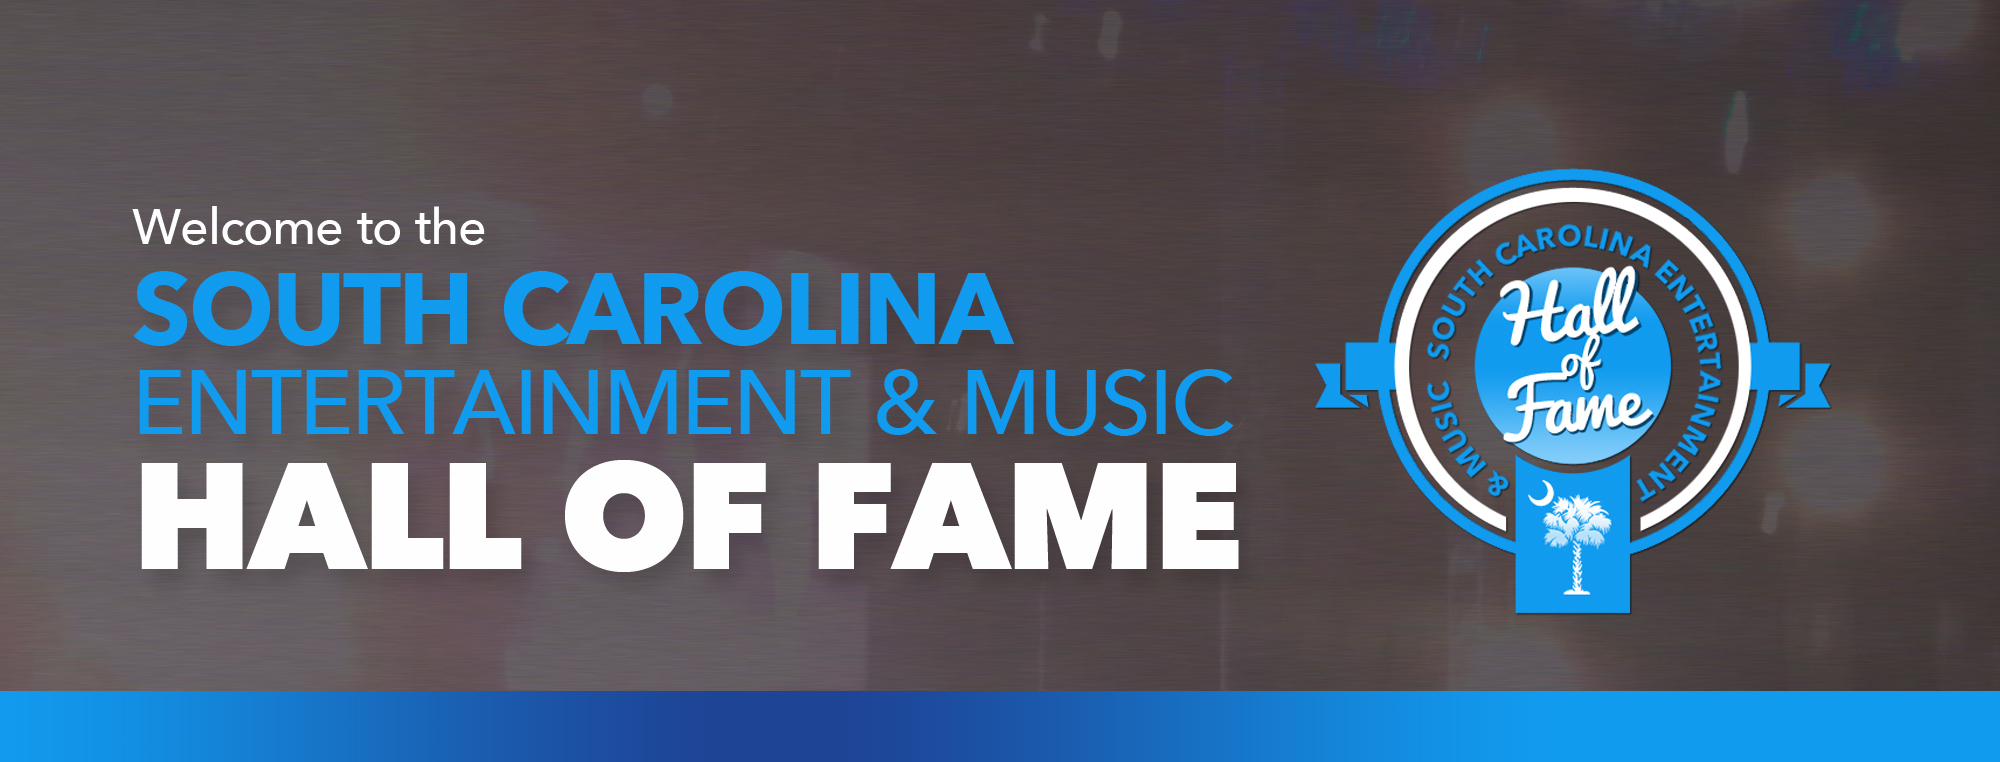 THE SOUTH CAROLINA ENTERTAINMENT & MUSIC HALL OF FAME